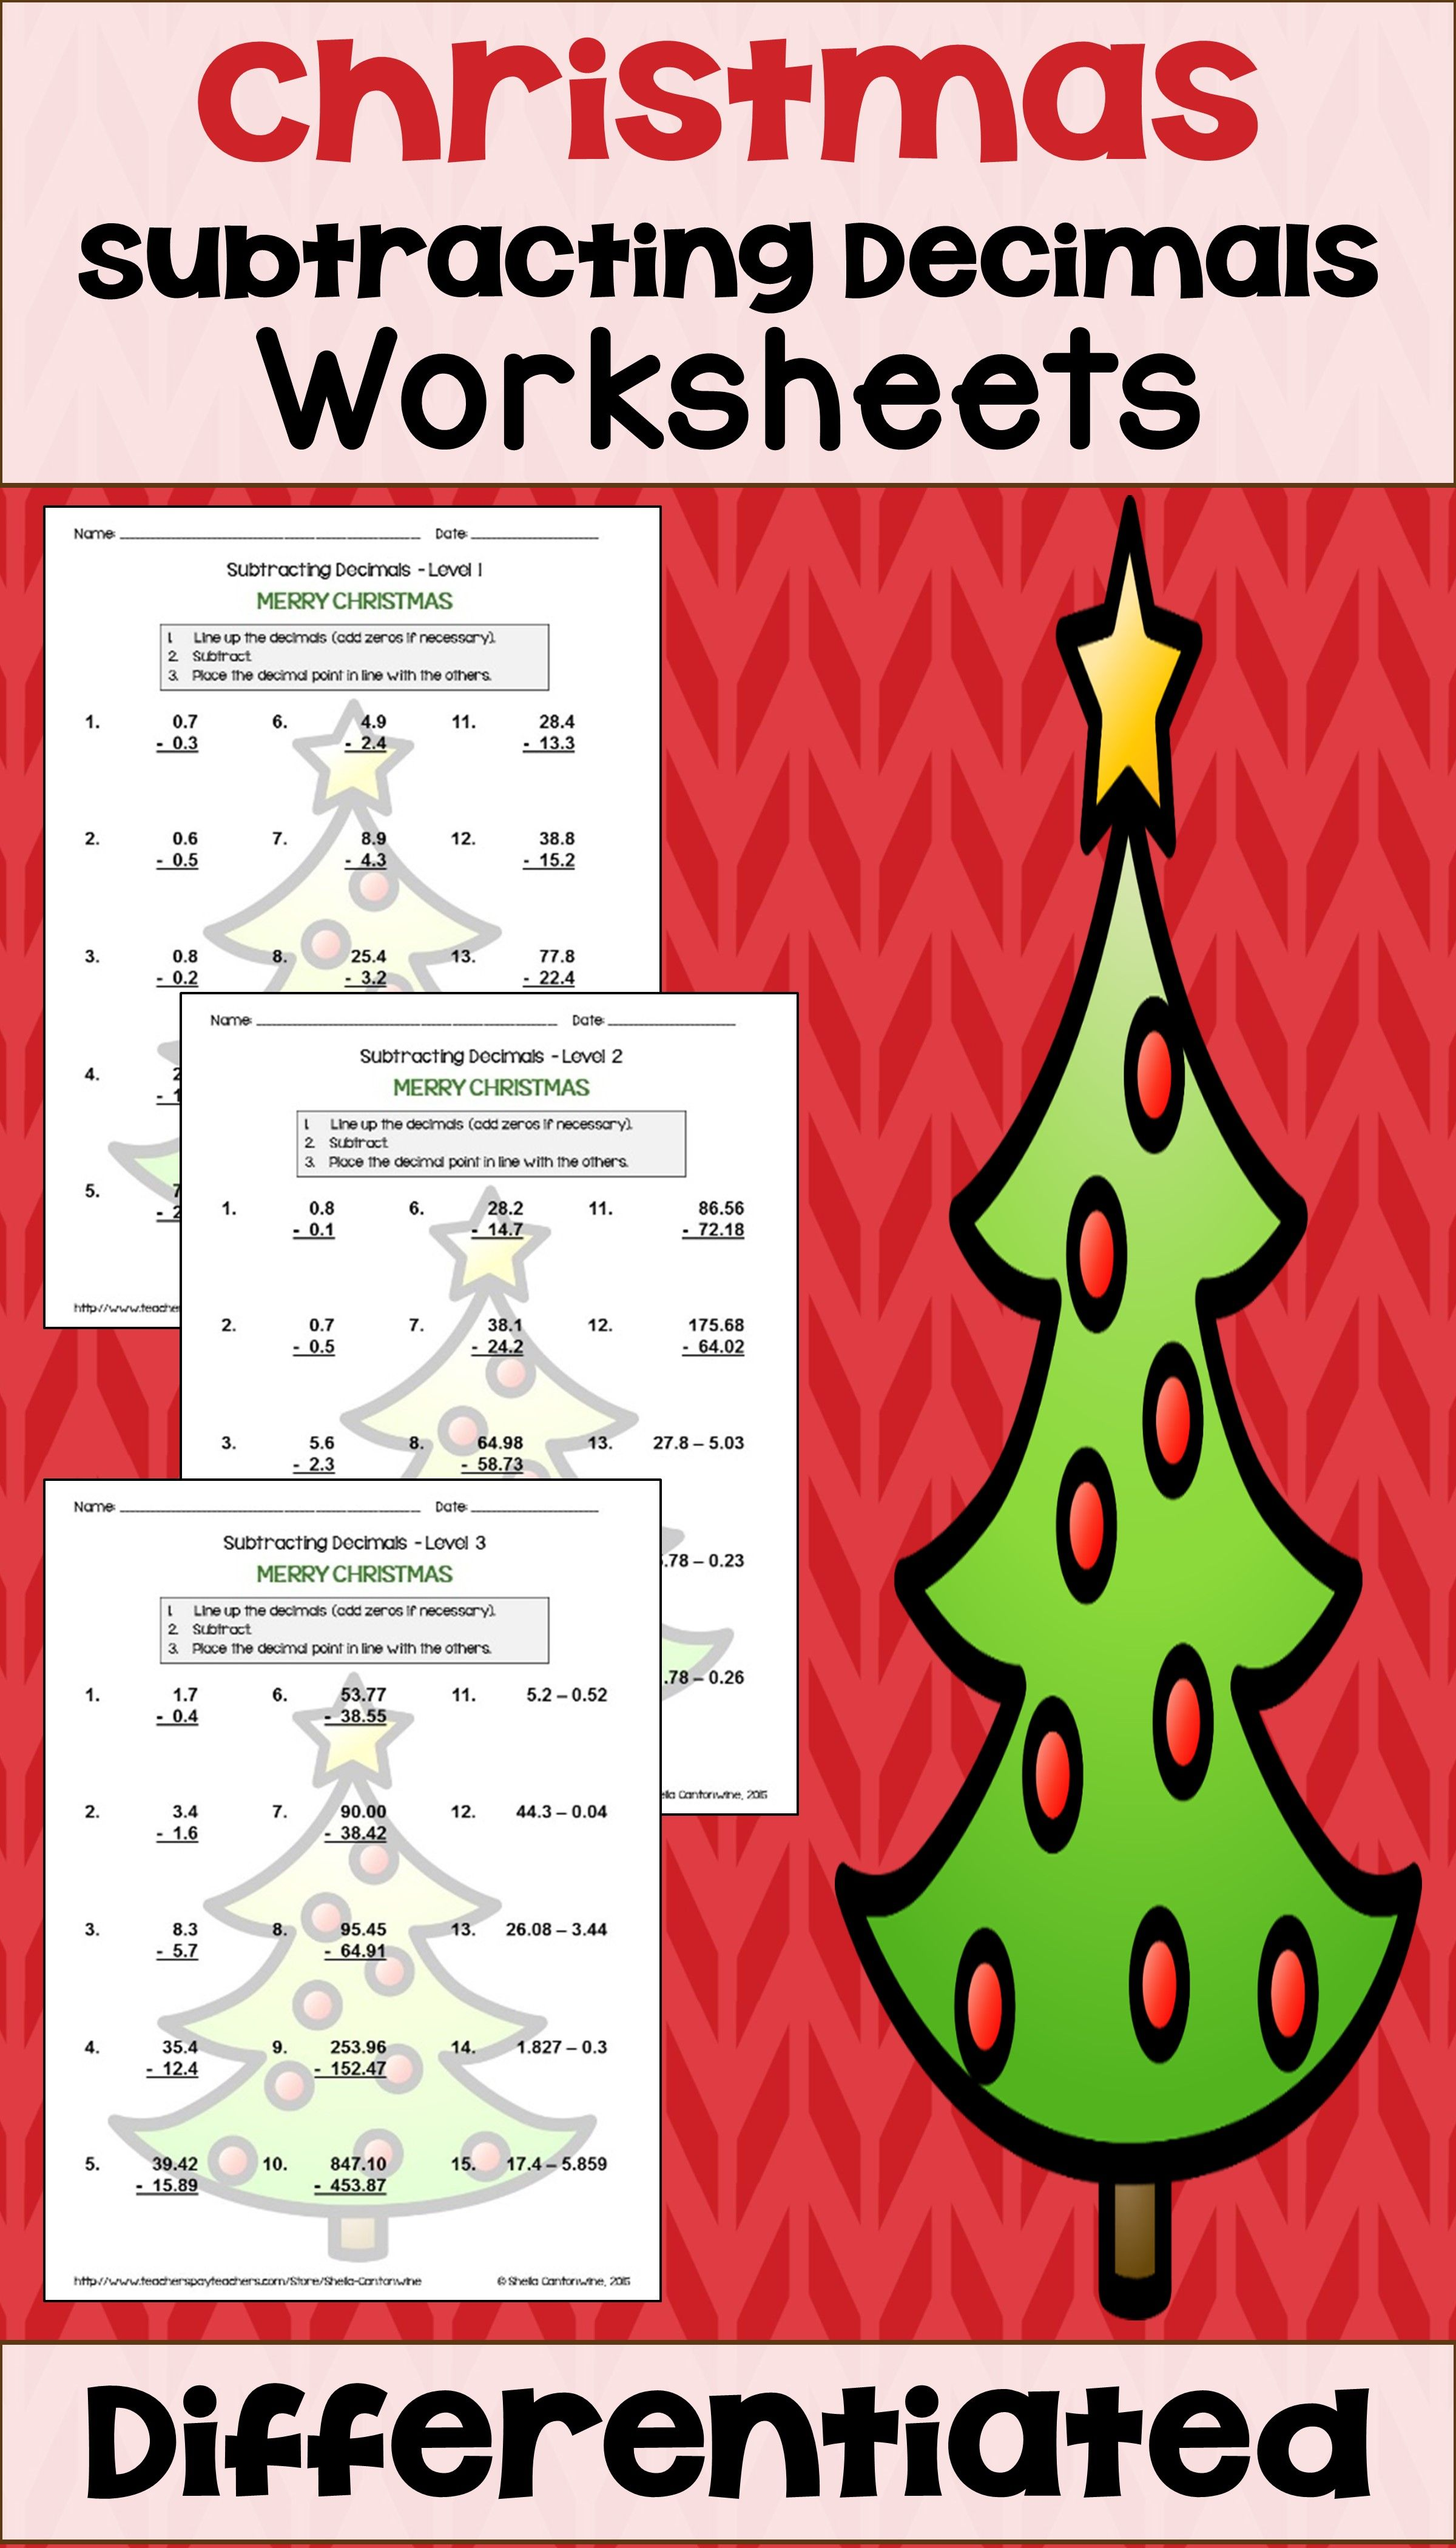 Christmas Subtracting Decimals Worksheets With Images